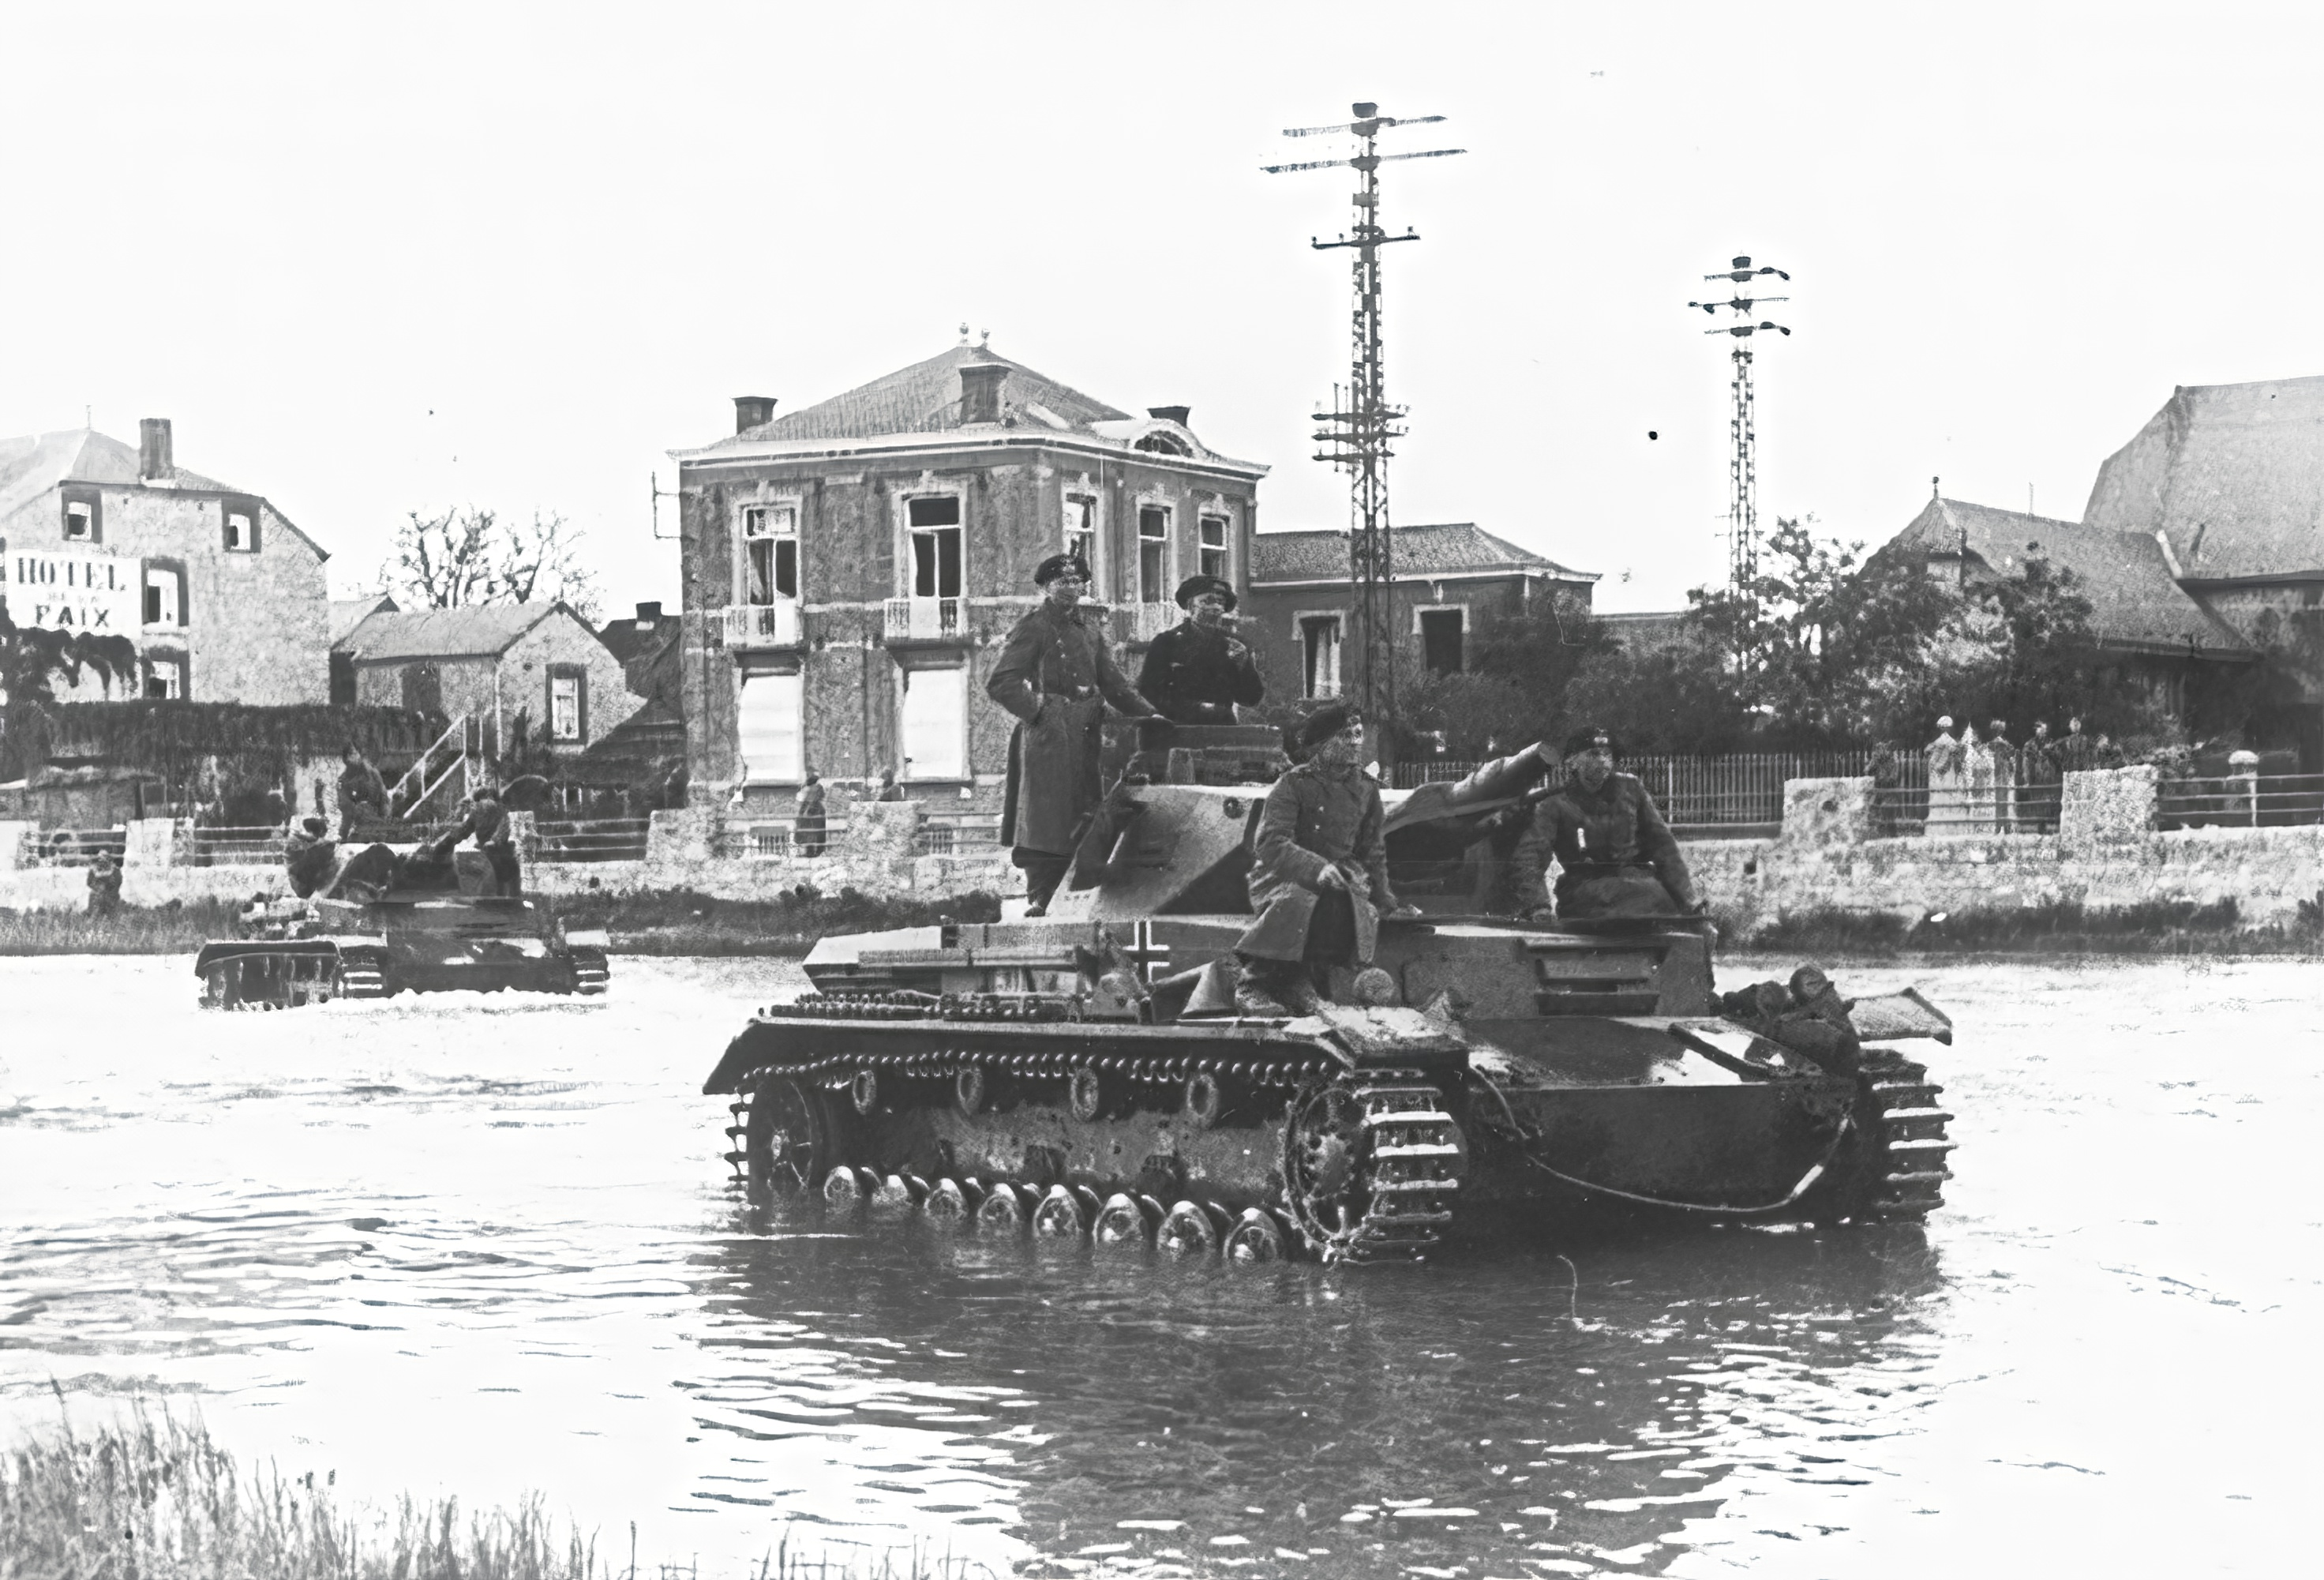 Wehrmacht Panzer III tanks advancing into Belgium 20th May 1940 NIOD